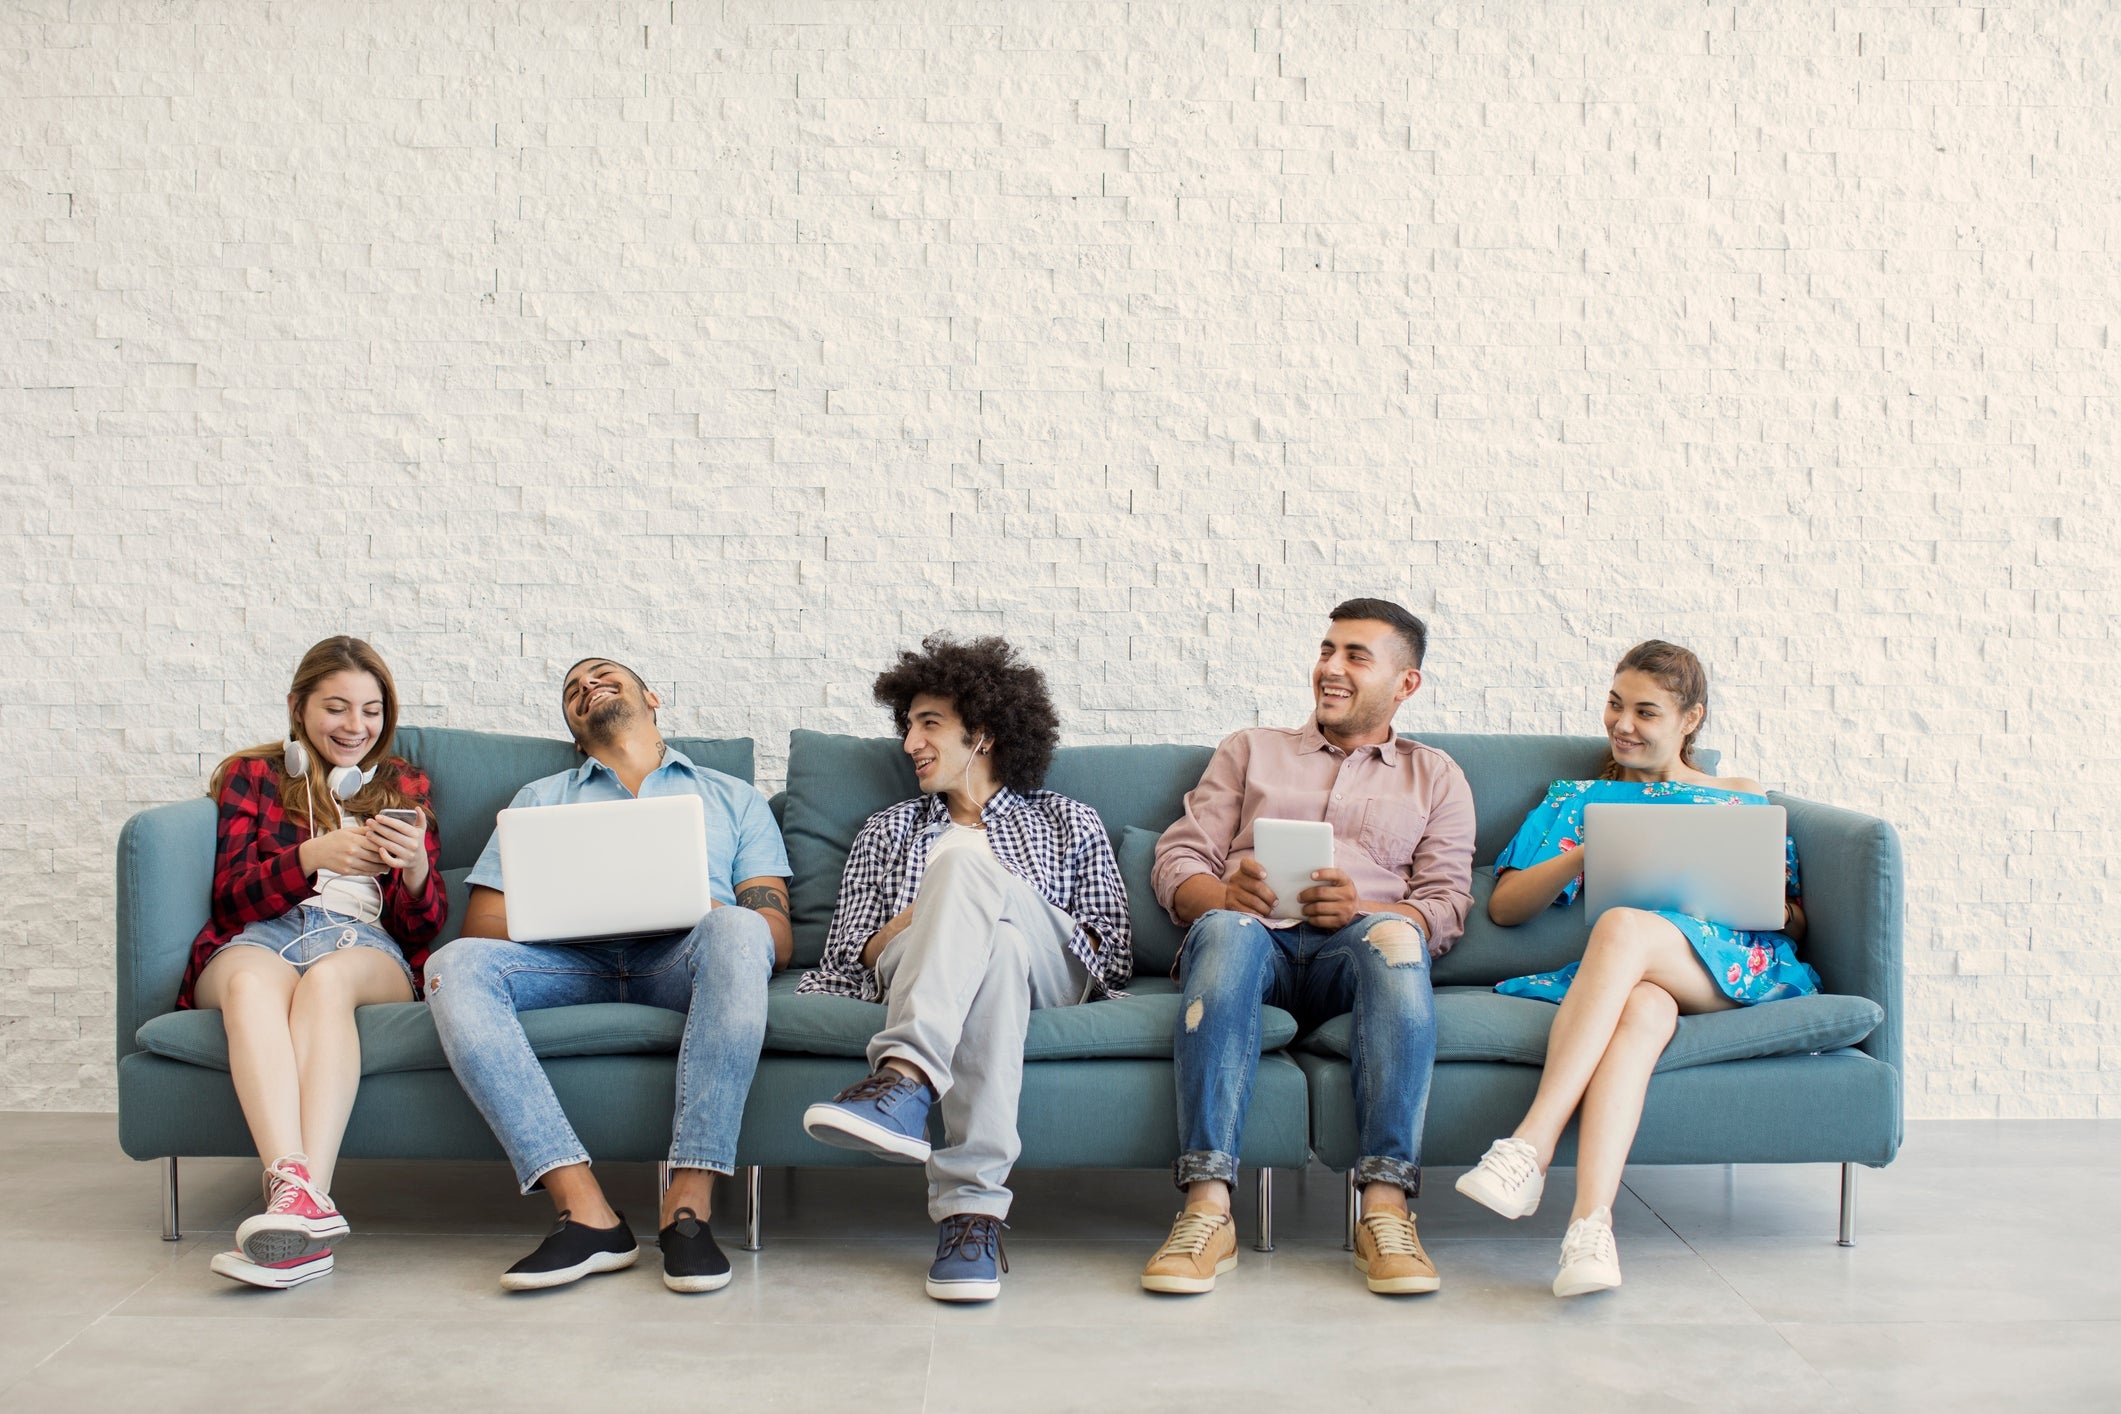 A group of college-age friends on a couch with laptops or phones.